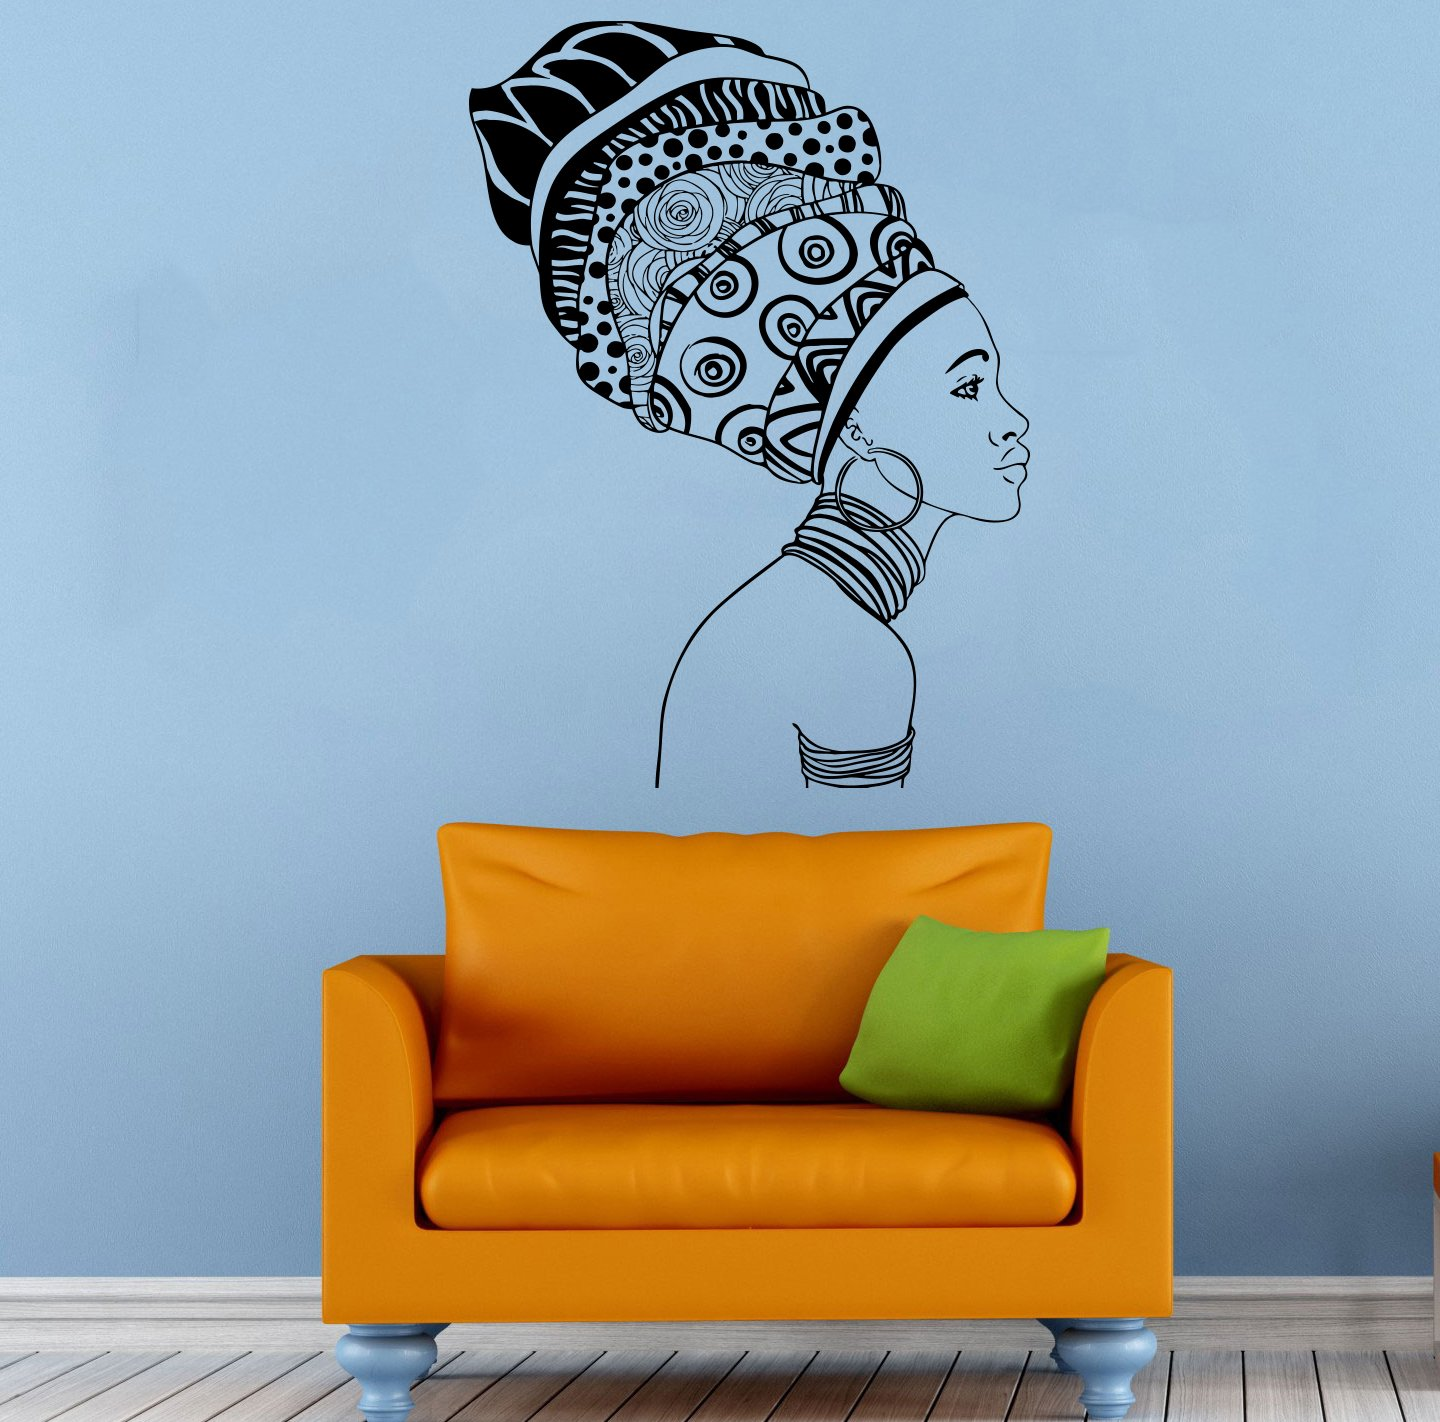 Africa African Girl Wall Stickers Vinyl Decals Home Decor Sticker